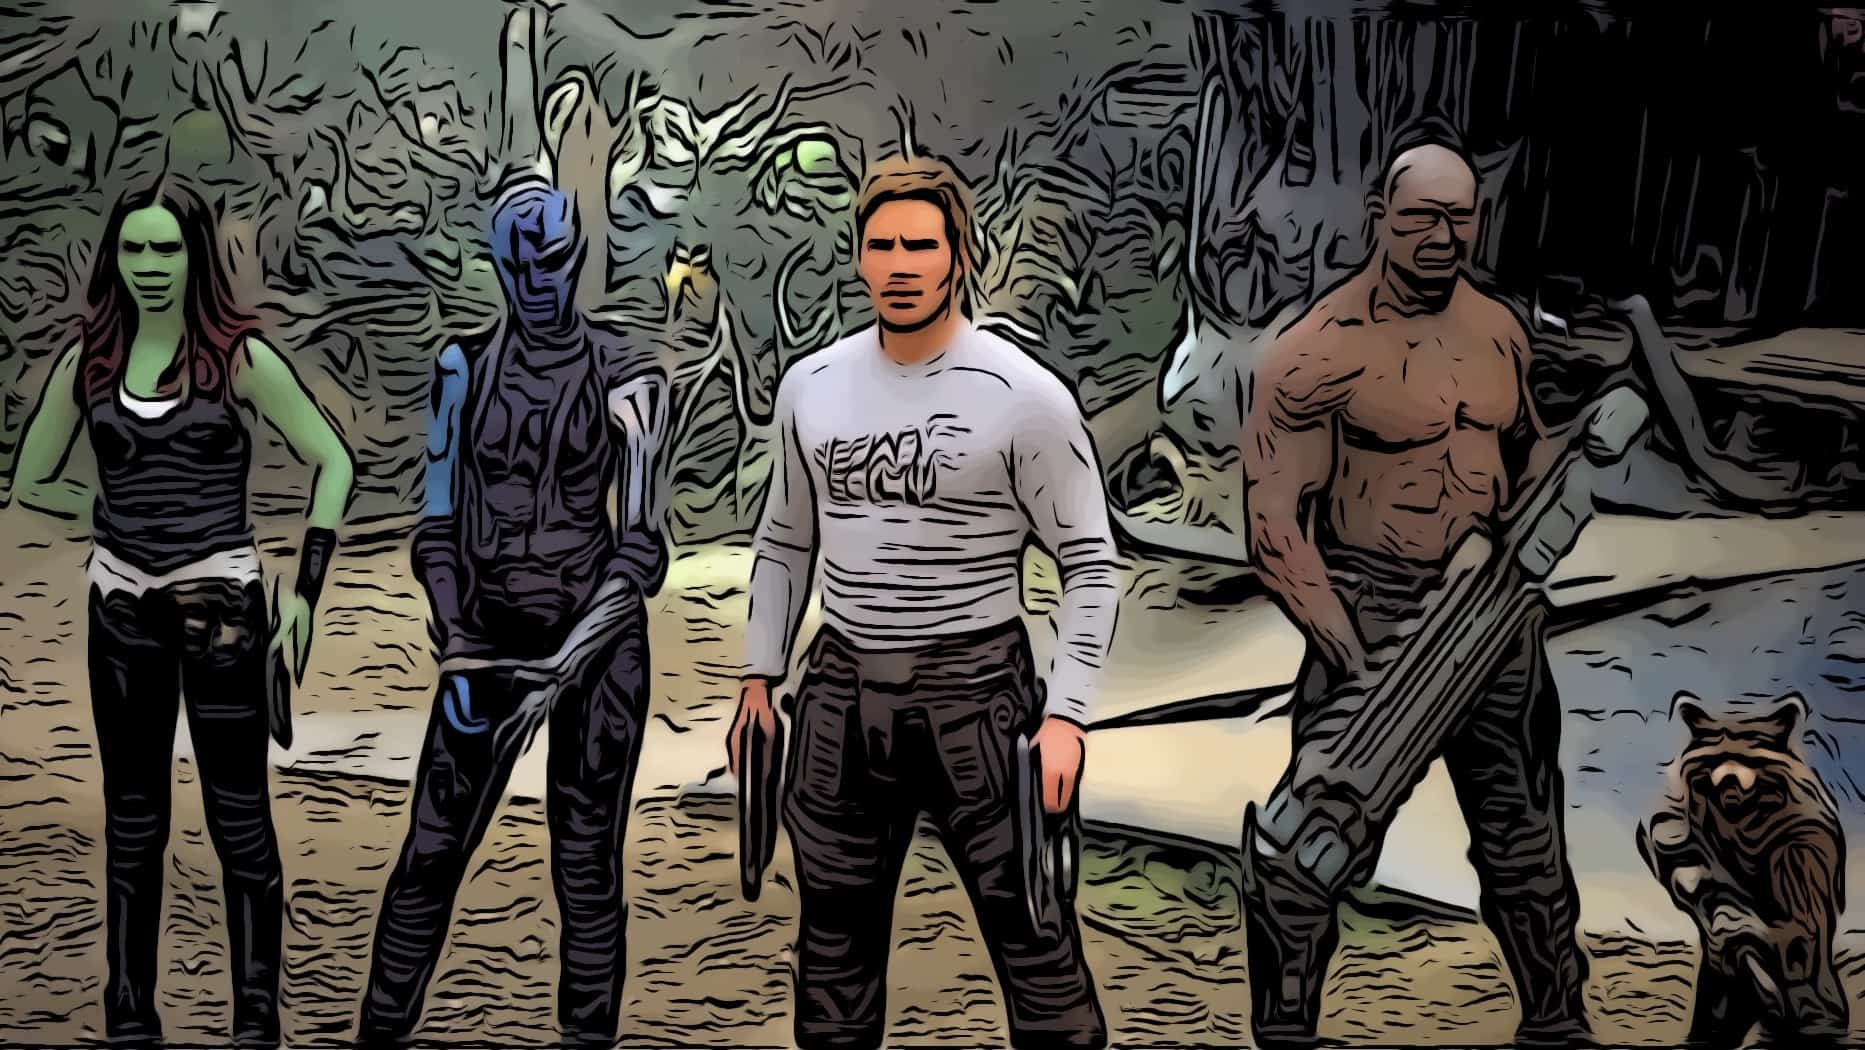 Scene in Guardians of the Galaxy 2 for Guardians of the Galaxy 2 easter eggs post.